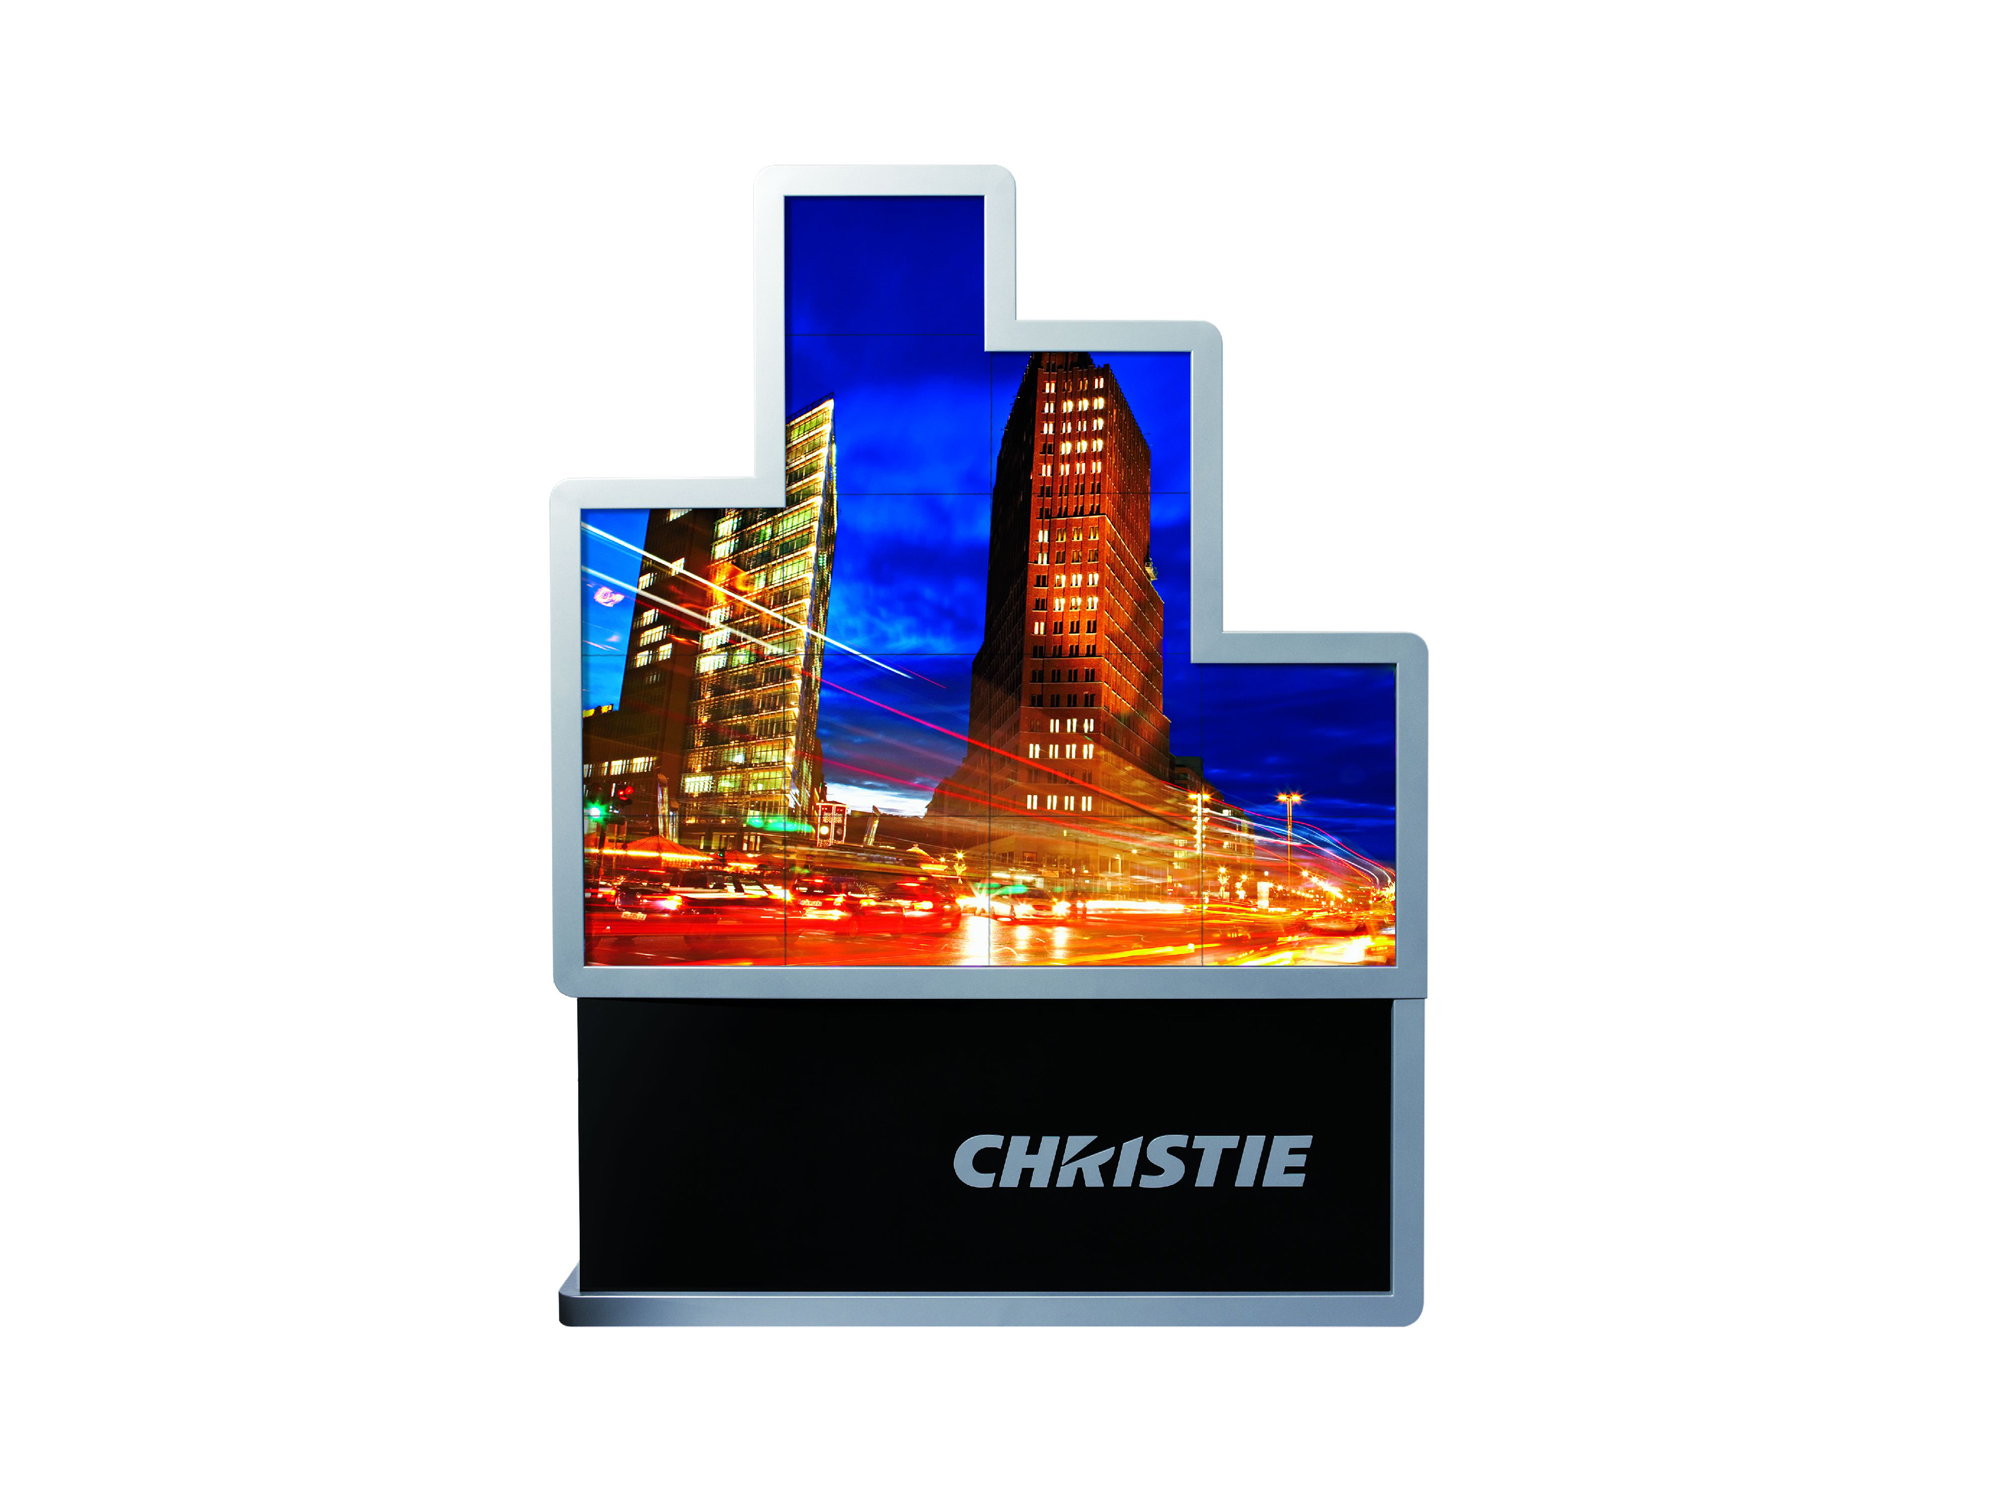 /globalassets/.catalog/products/images/microtiles/gallery/christie-microtiles-digital-signage-video-walls-image4.jpg